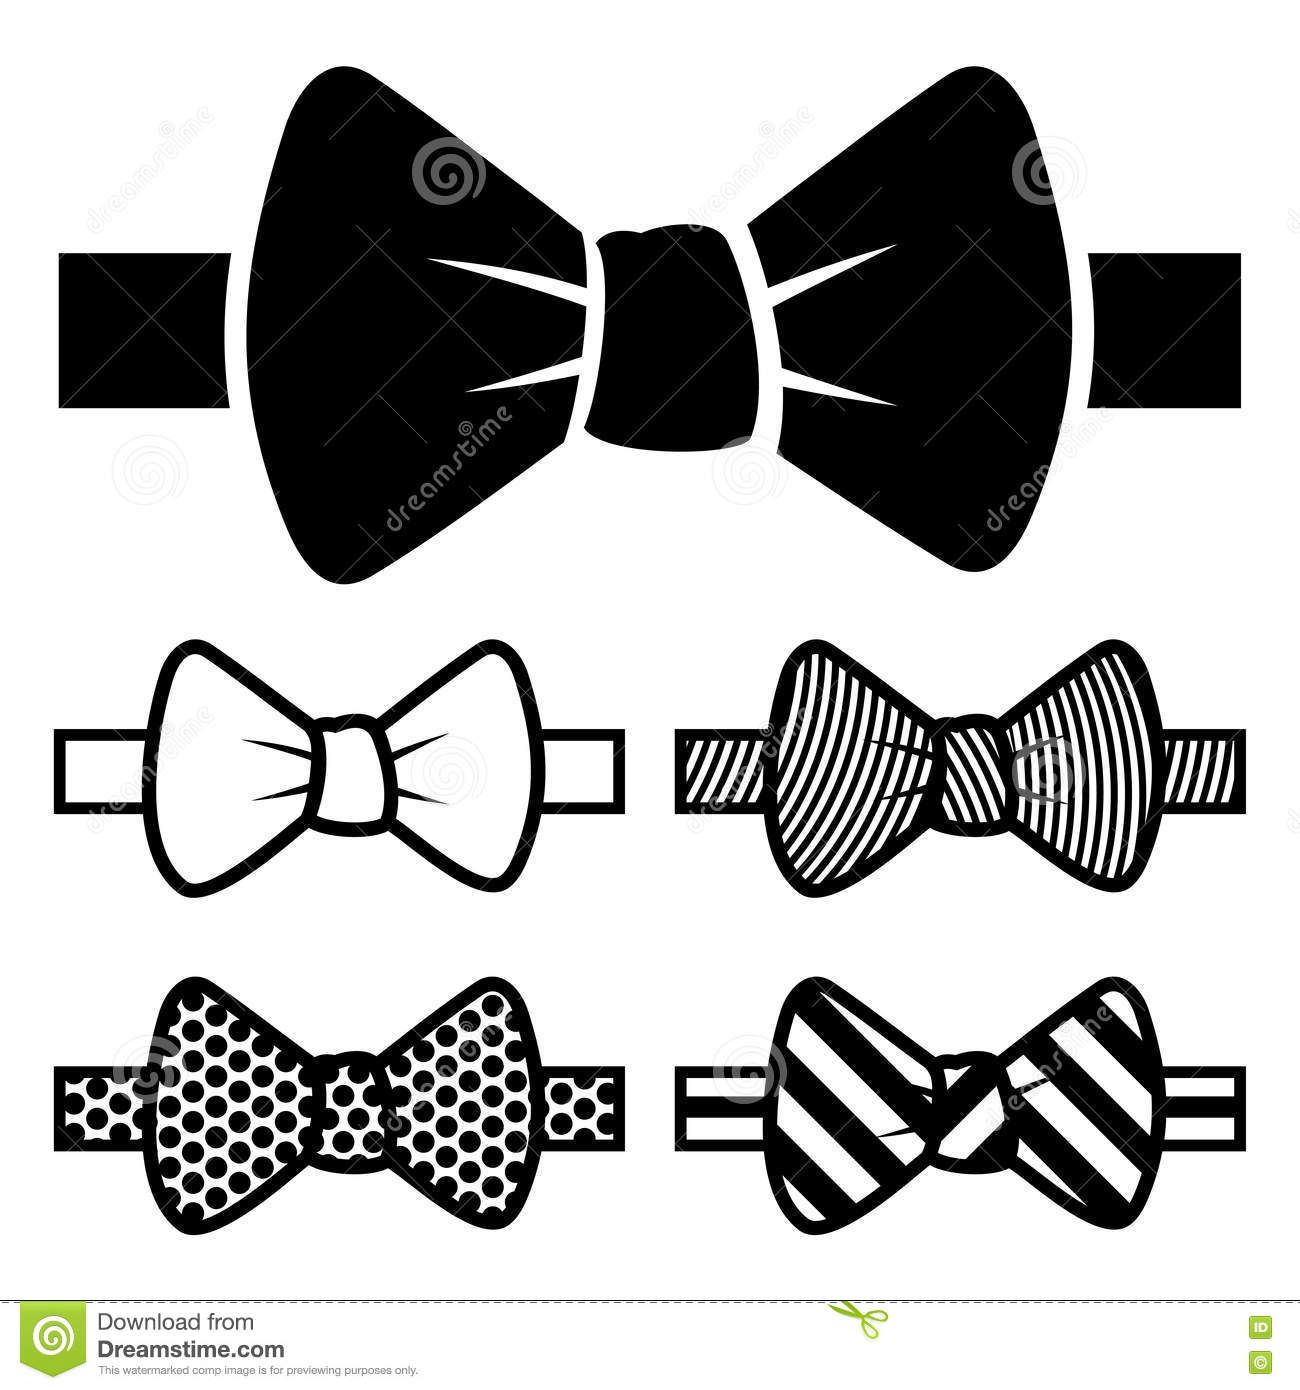 10+ Bow tie clipart free ideas in 2021